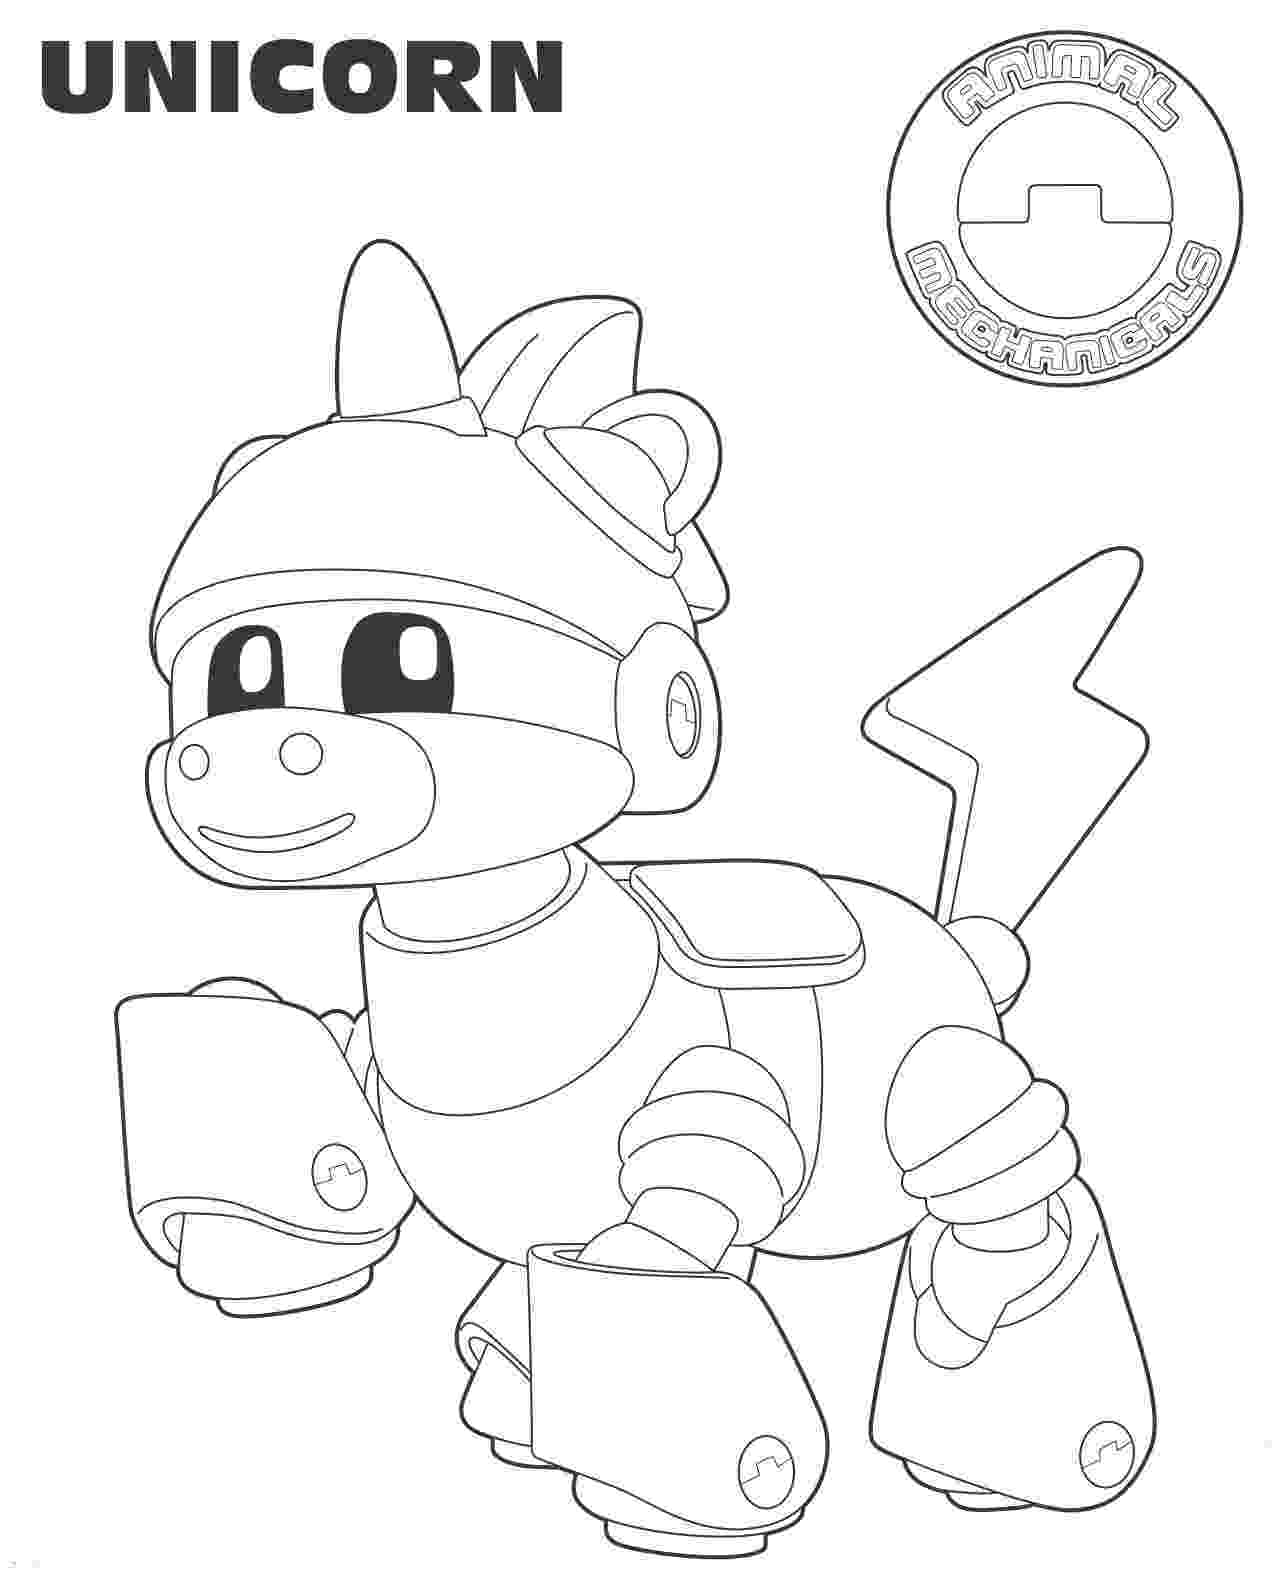 animal mechanicals coloring sheets animal mechanicals coloring pages timeless miraclecom animal sheets coloring mechanicals